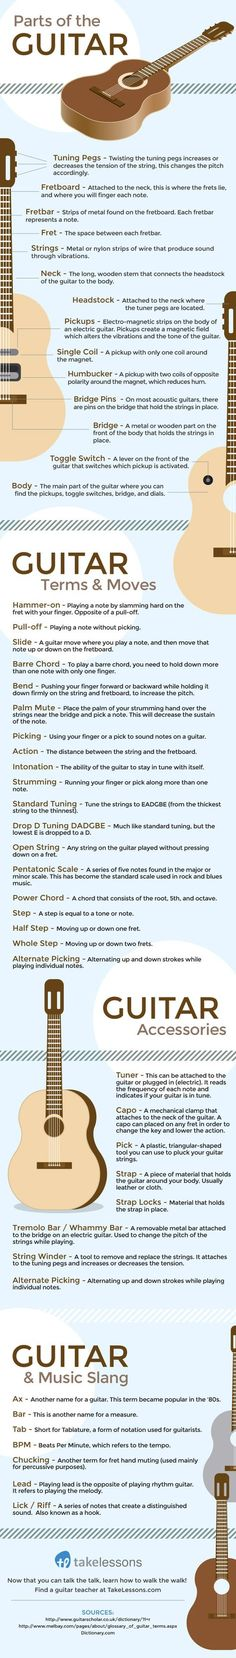 Essential Guitar Terms for Beginners More